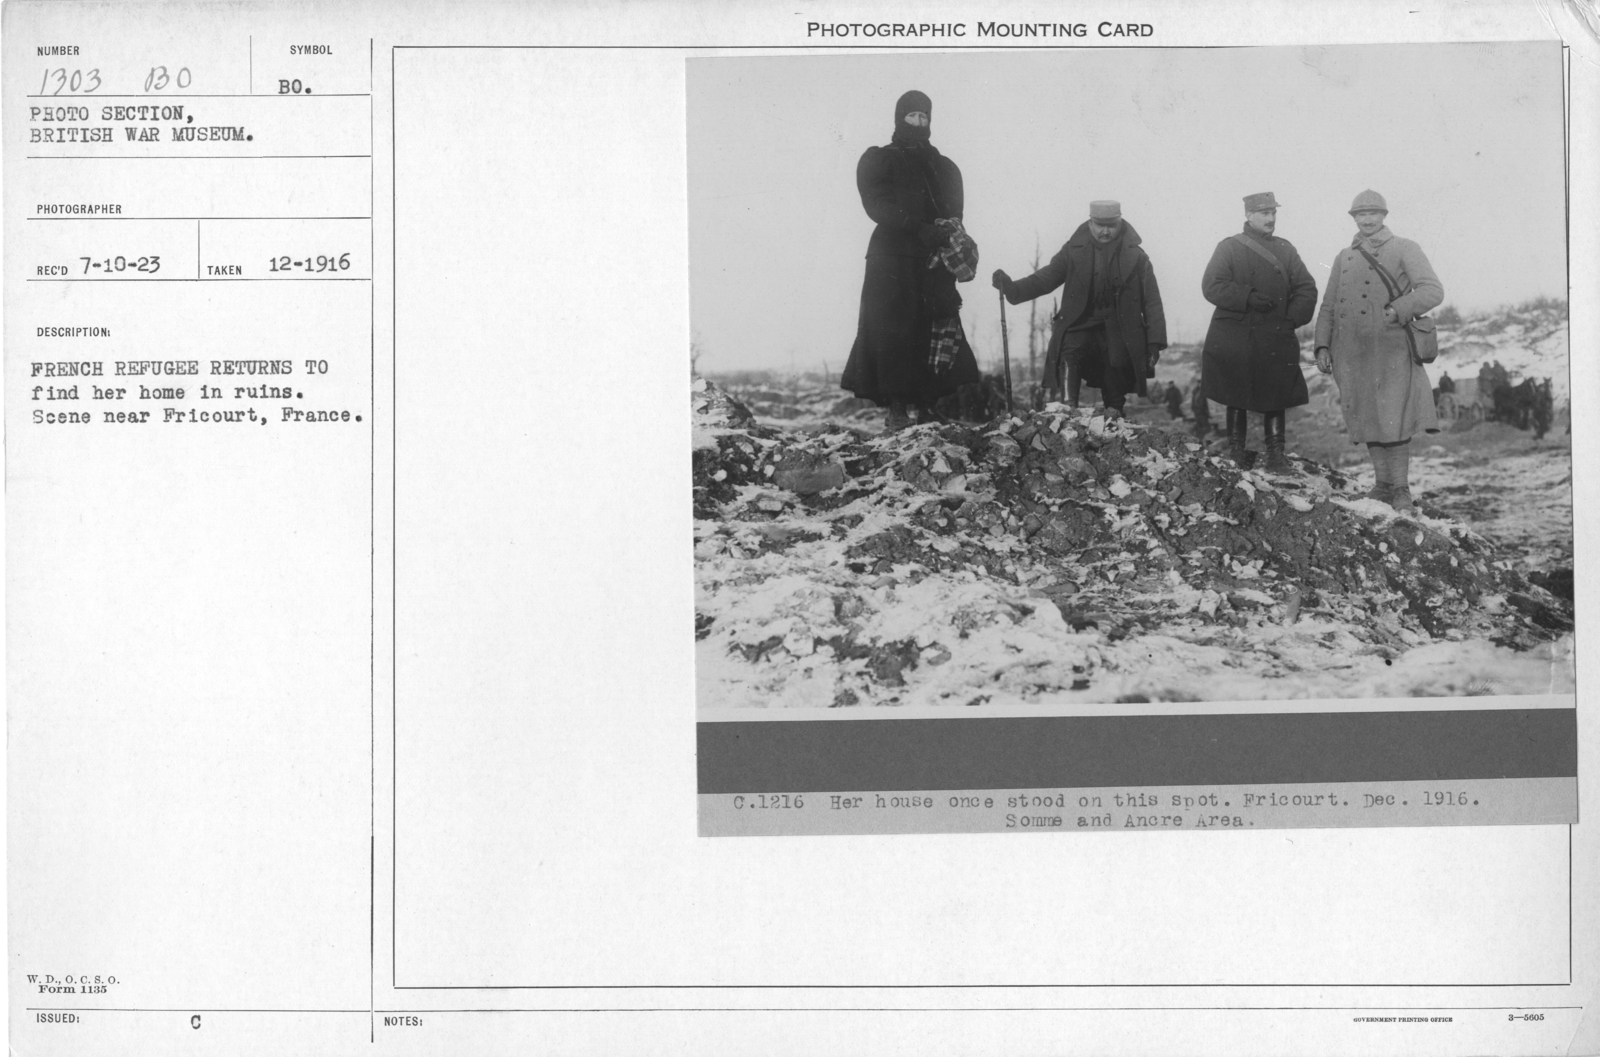 French refugee returns to find her home in ruins. Scene near Fricourt, France. 12-1916